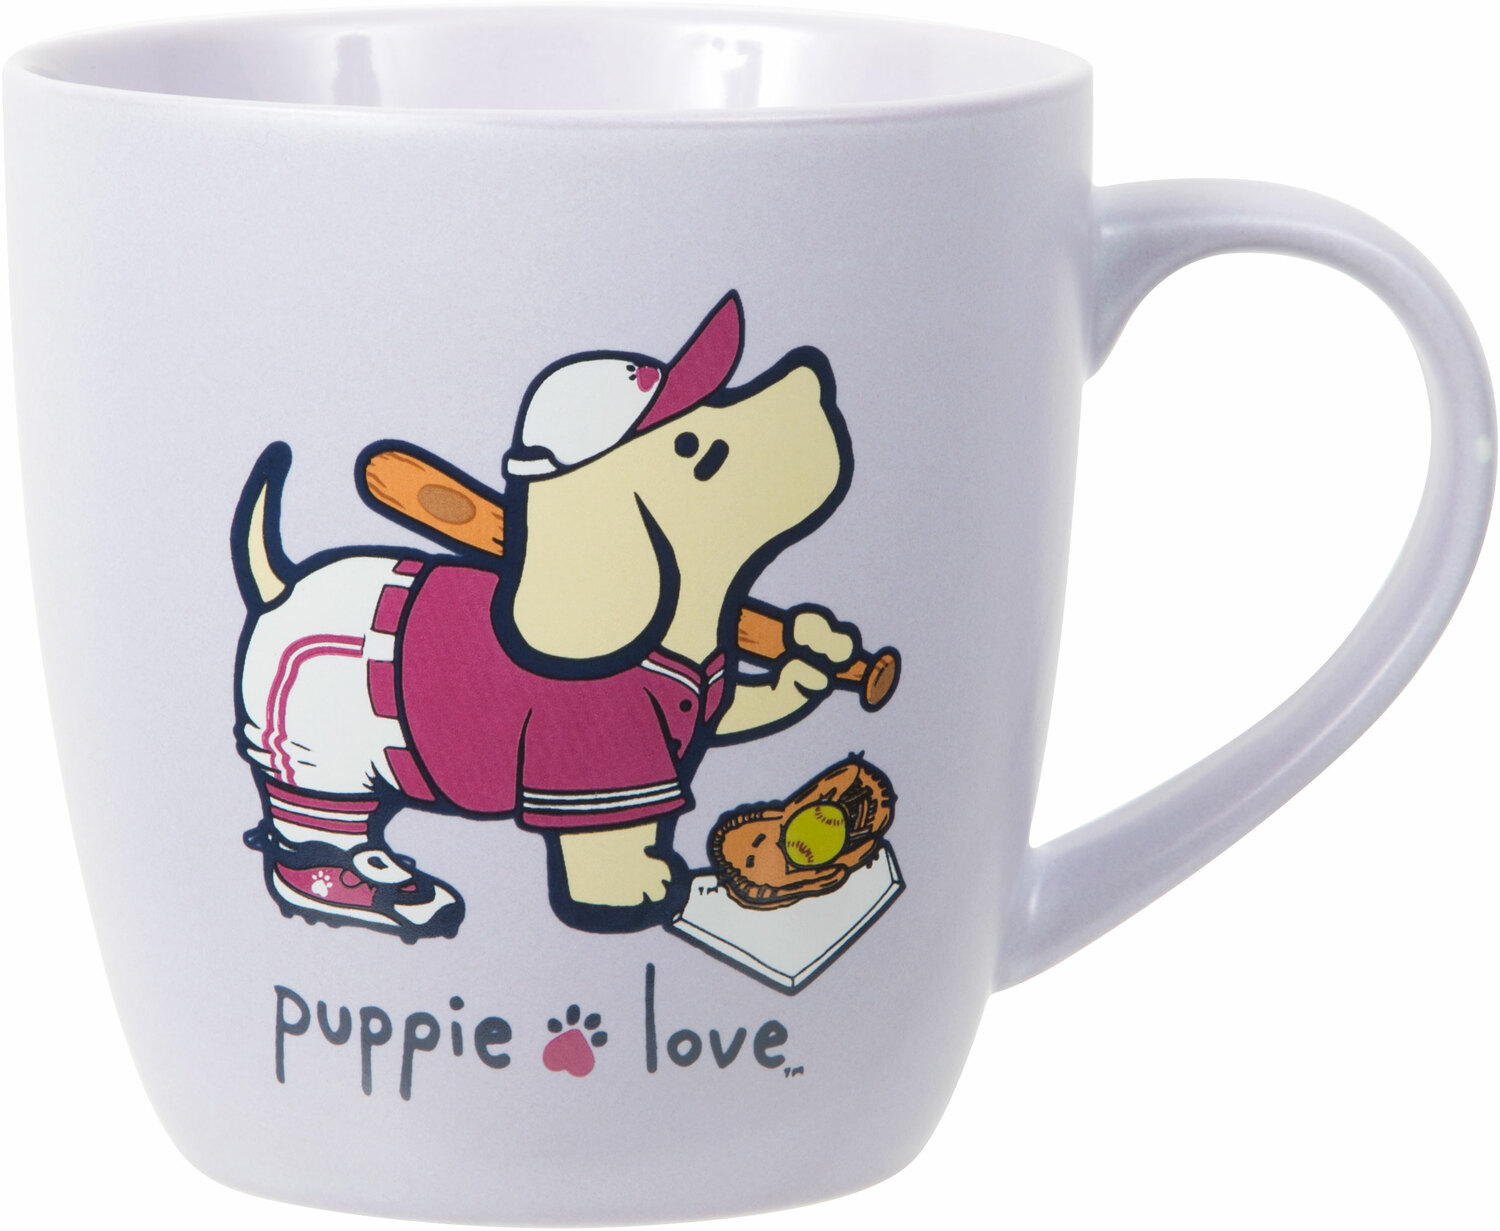 Softball by Puppie Love - Softball - 17 oz Cup